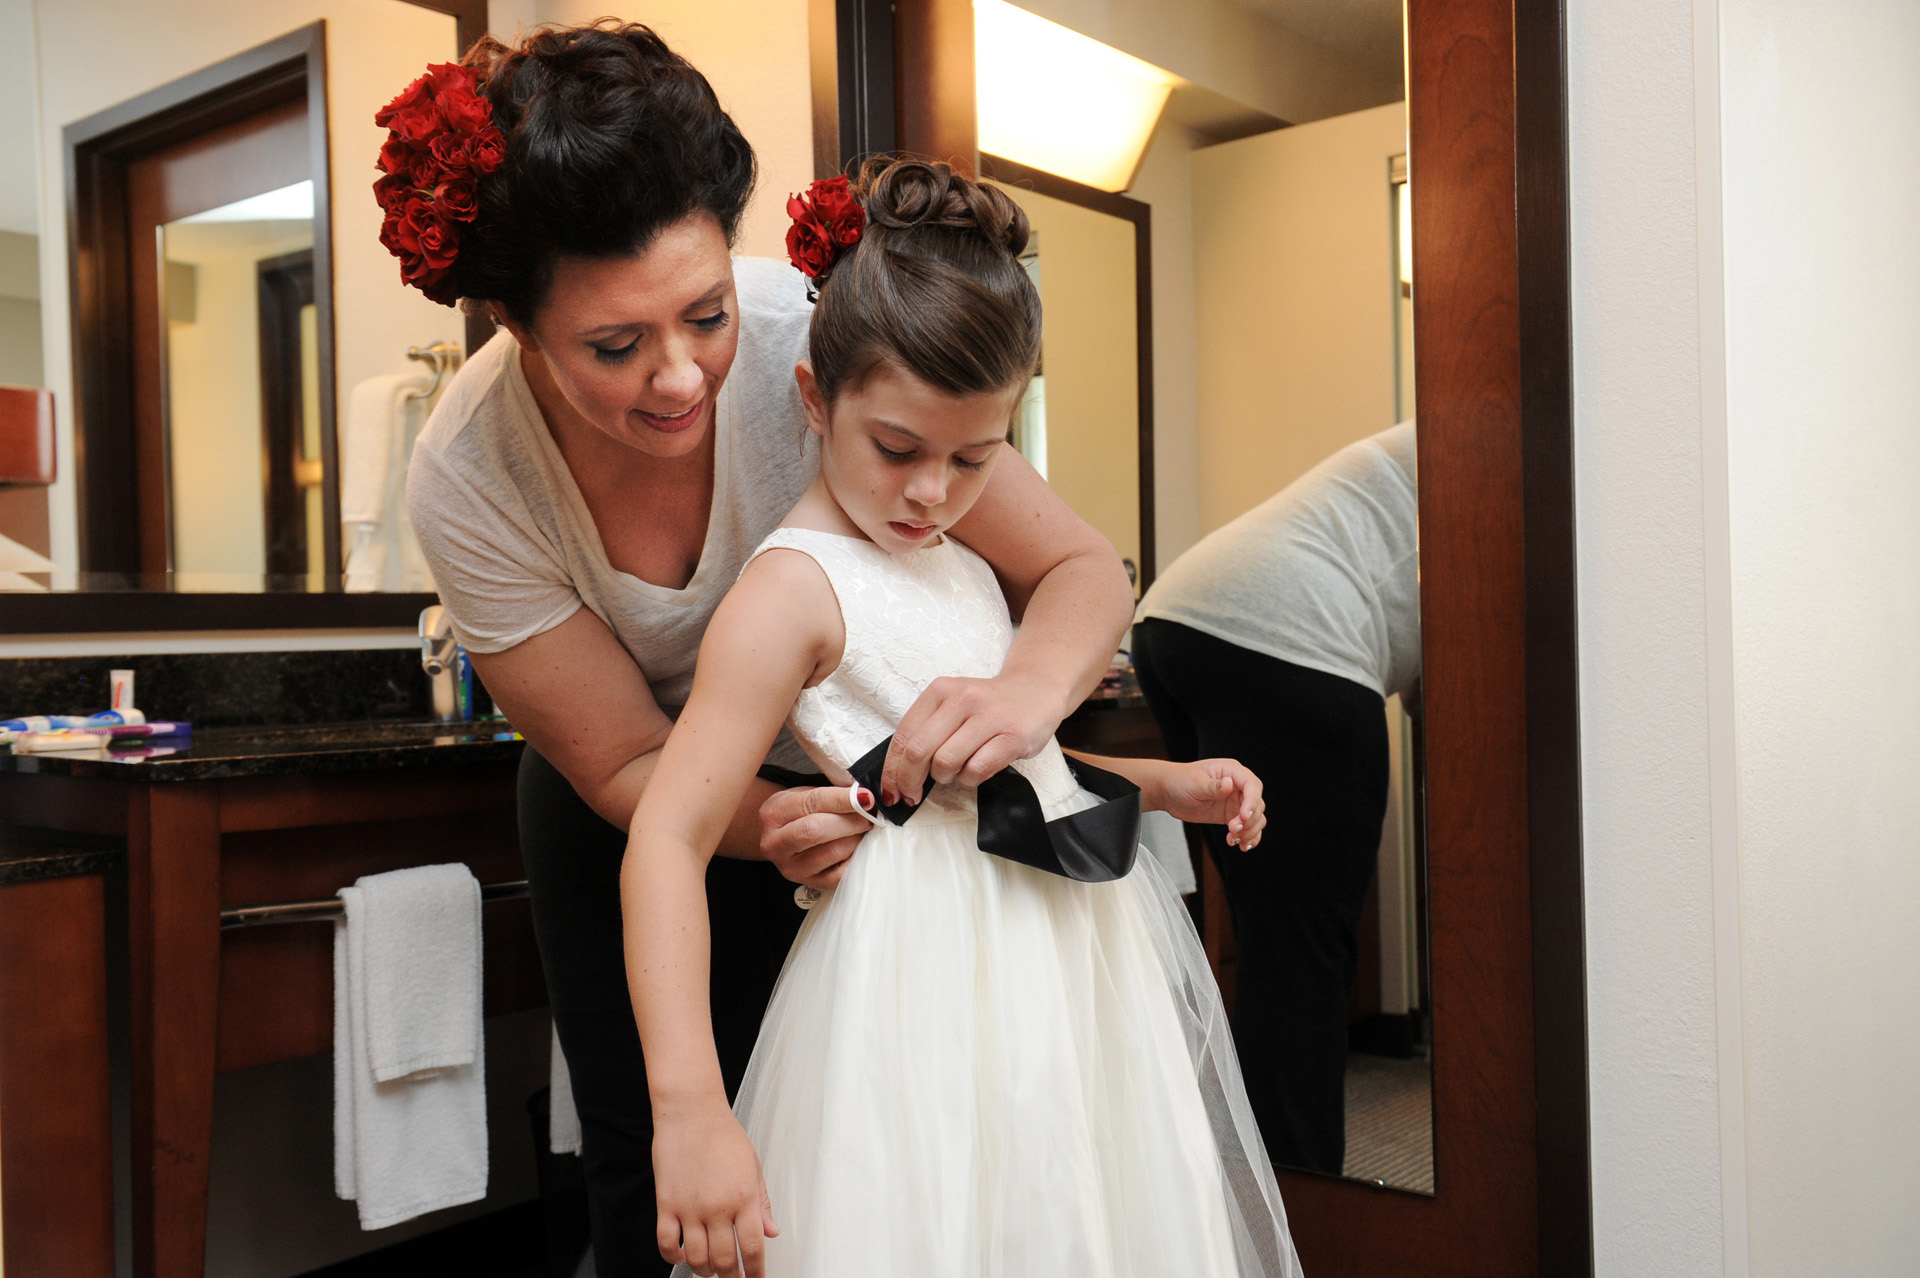 Livonia, Michigan wedding photographer's photo of the bride helps her daughter get ready for her wedding at the Michigan same sex wedding.